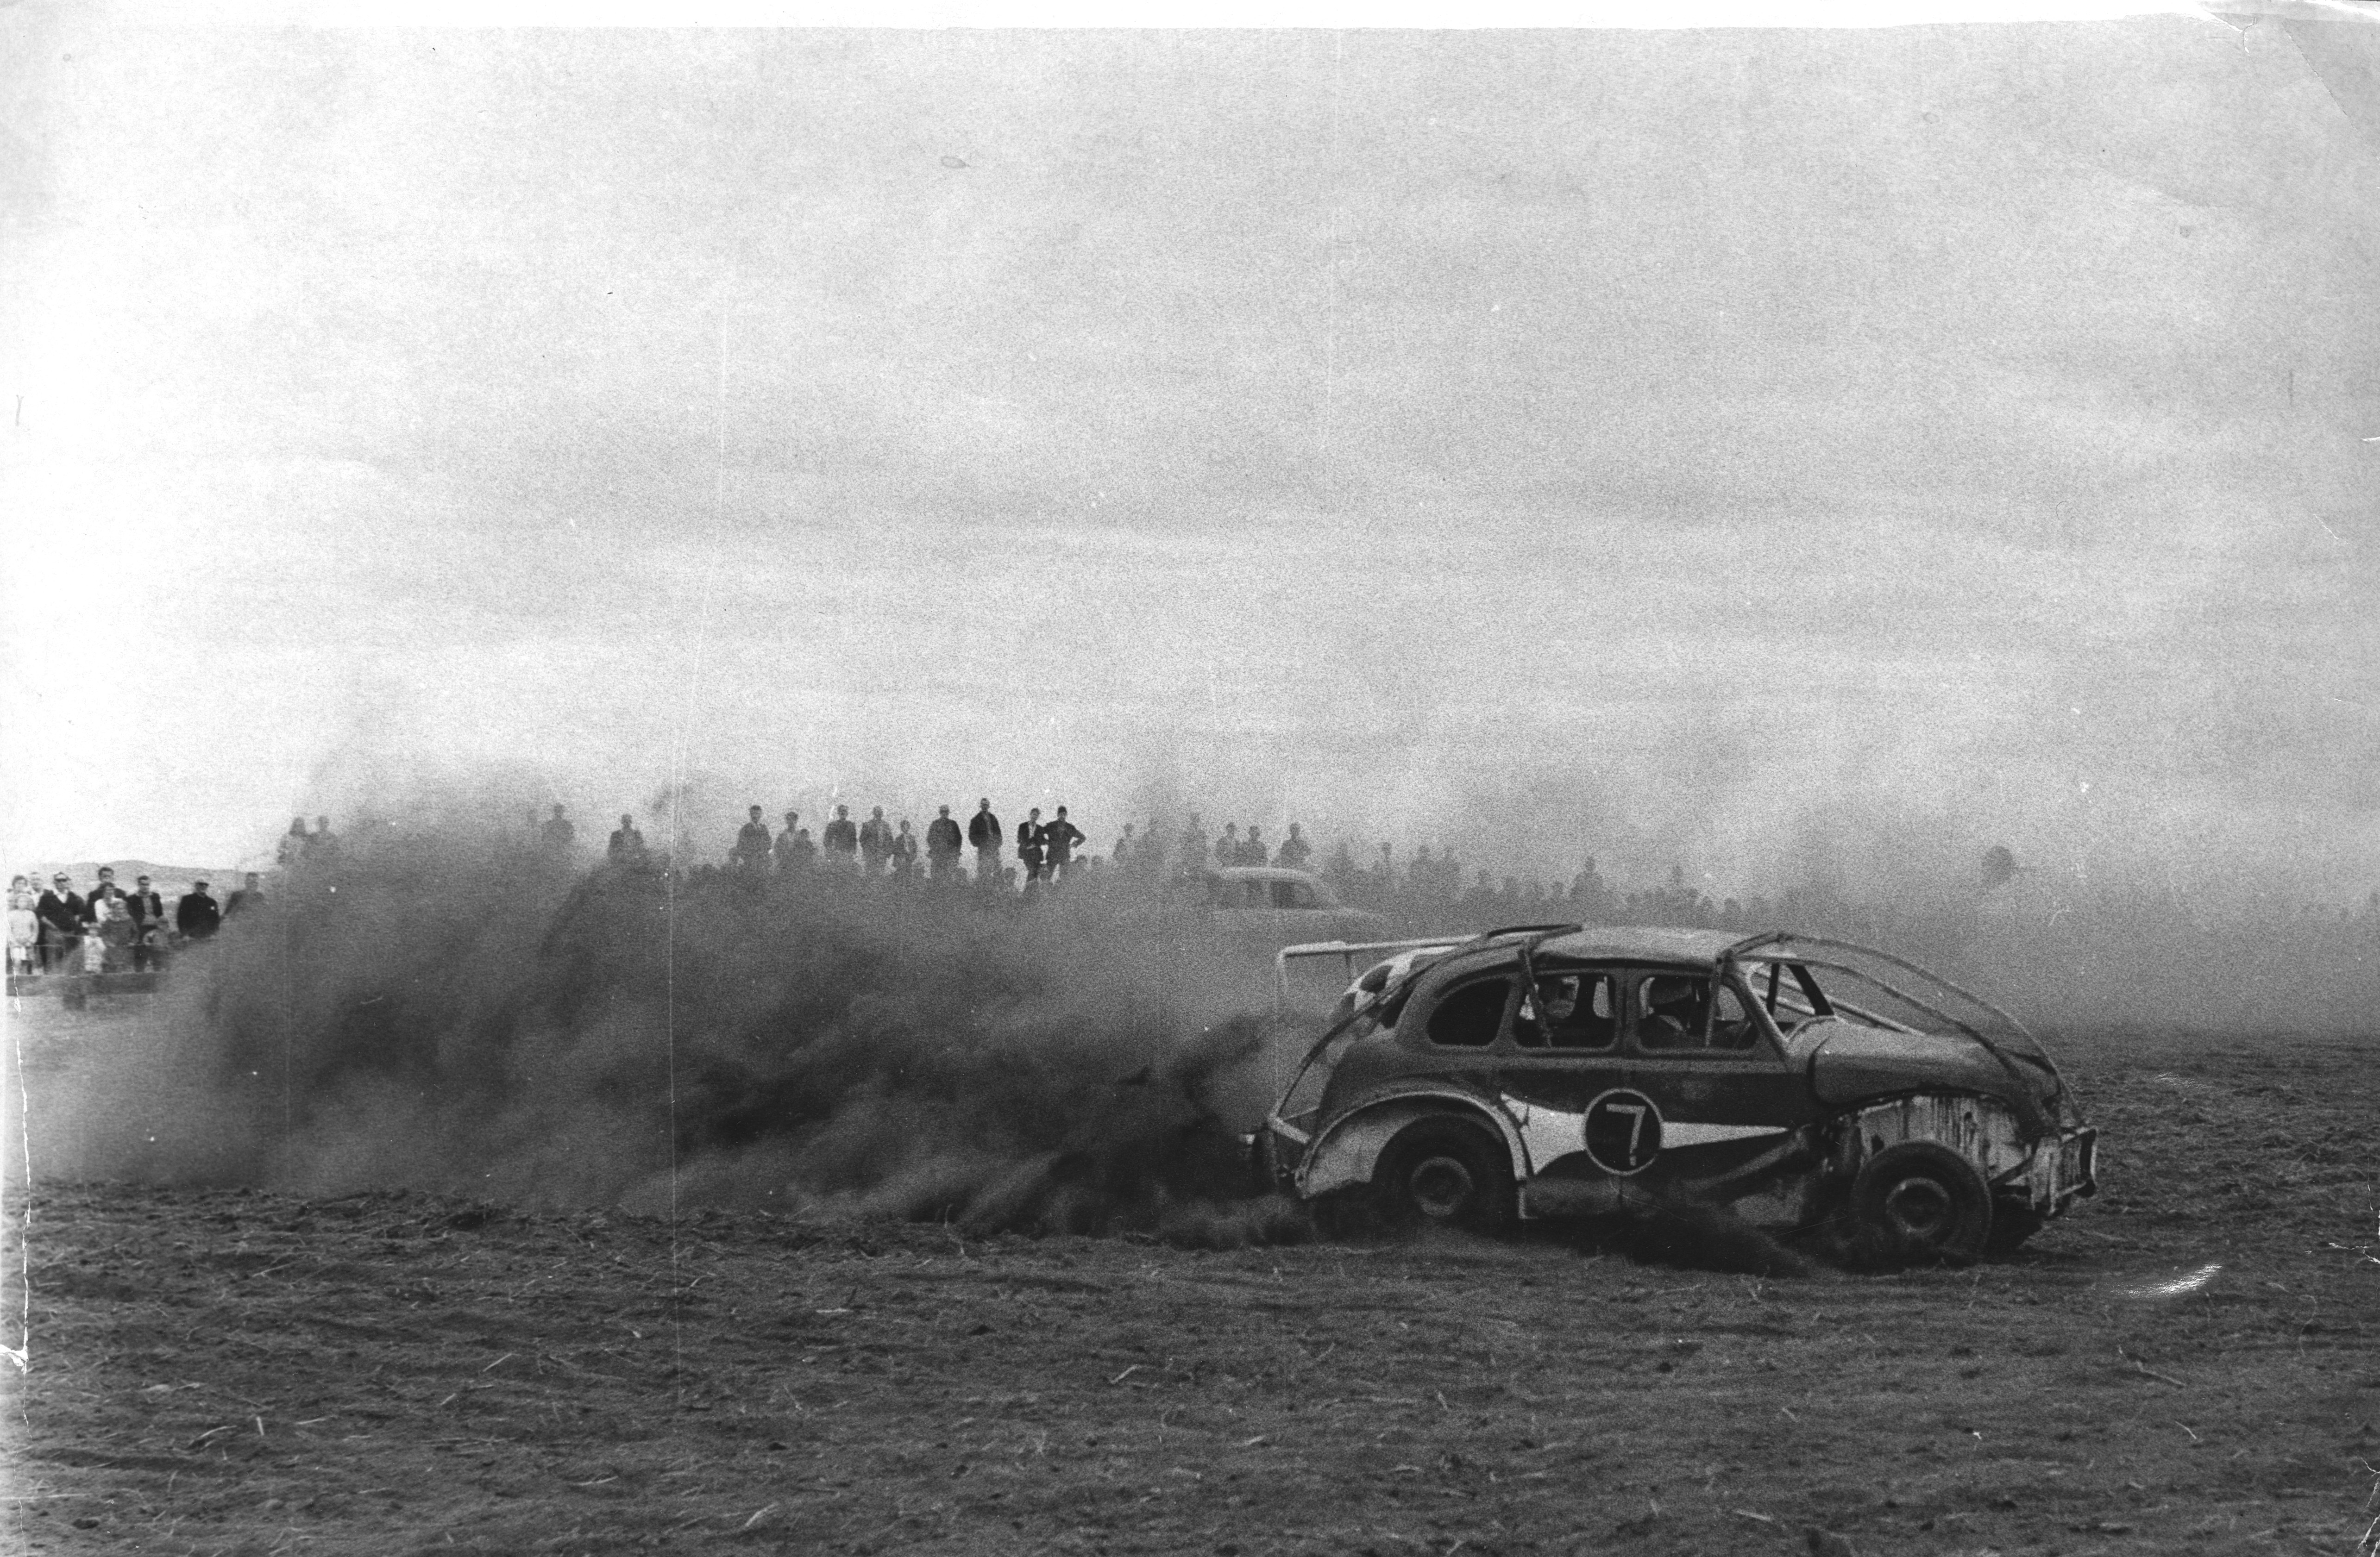 """Motorsport  Car Racing 1967-08-26 (C) AJL  """"Before the final of the day's events could be run police stopped the races, after crash barriers gave way at Aberdeen Stock Car Racing Club's first meeting yesterday. And on top of that many of the thousands who flocked to Catto's Park, Bridge of Don, to see the races were disgruntled to find that they were being given a shower bath of grit and dust - a sample of it is pictured above. As the cars roared round the track so much dust was thrown up into the faces of the crowd that many left after seeing only a few races. The club's secretary, Mr Bob Sharples, said last night: """"It was admittedly a bit of a shambles, but we will learn from our mistakes."""" Picture taken 26 August 1967.  Used: P&J 28/08/1967; EE 29/05/2018."""